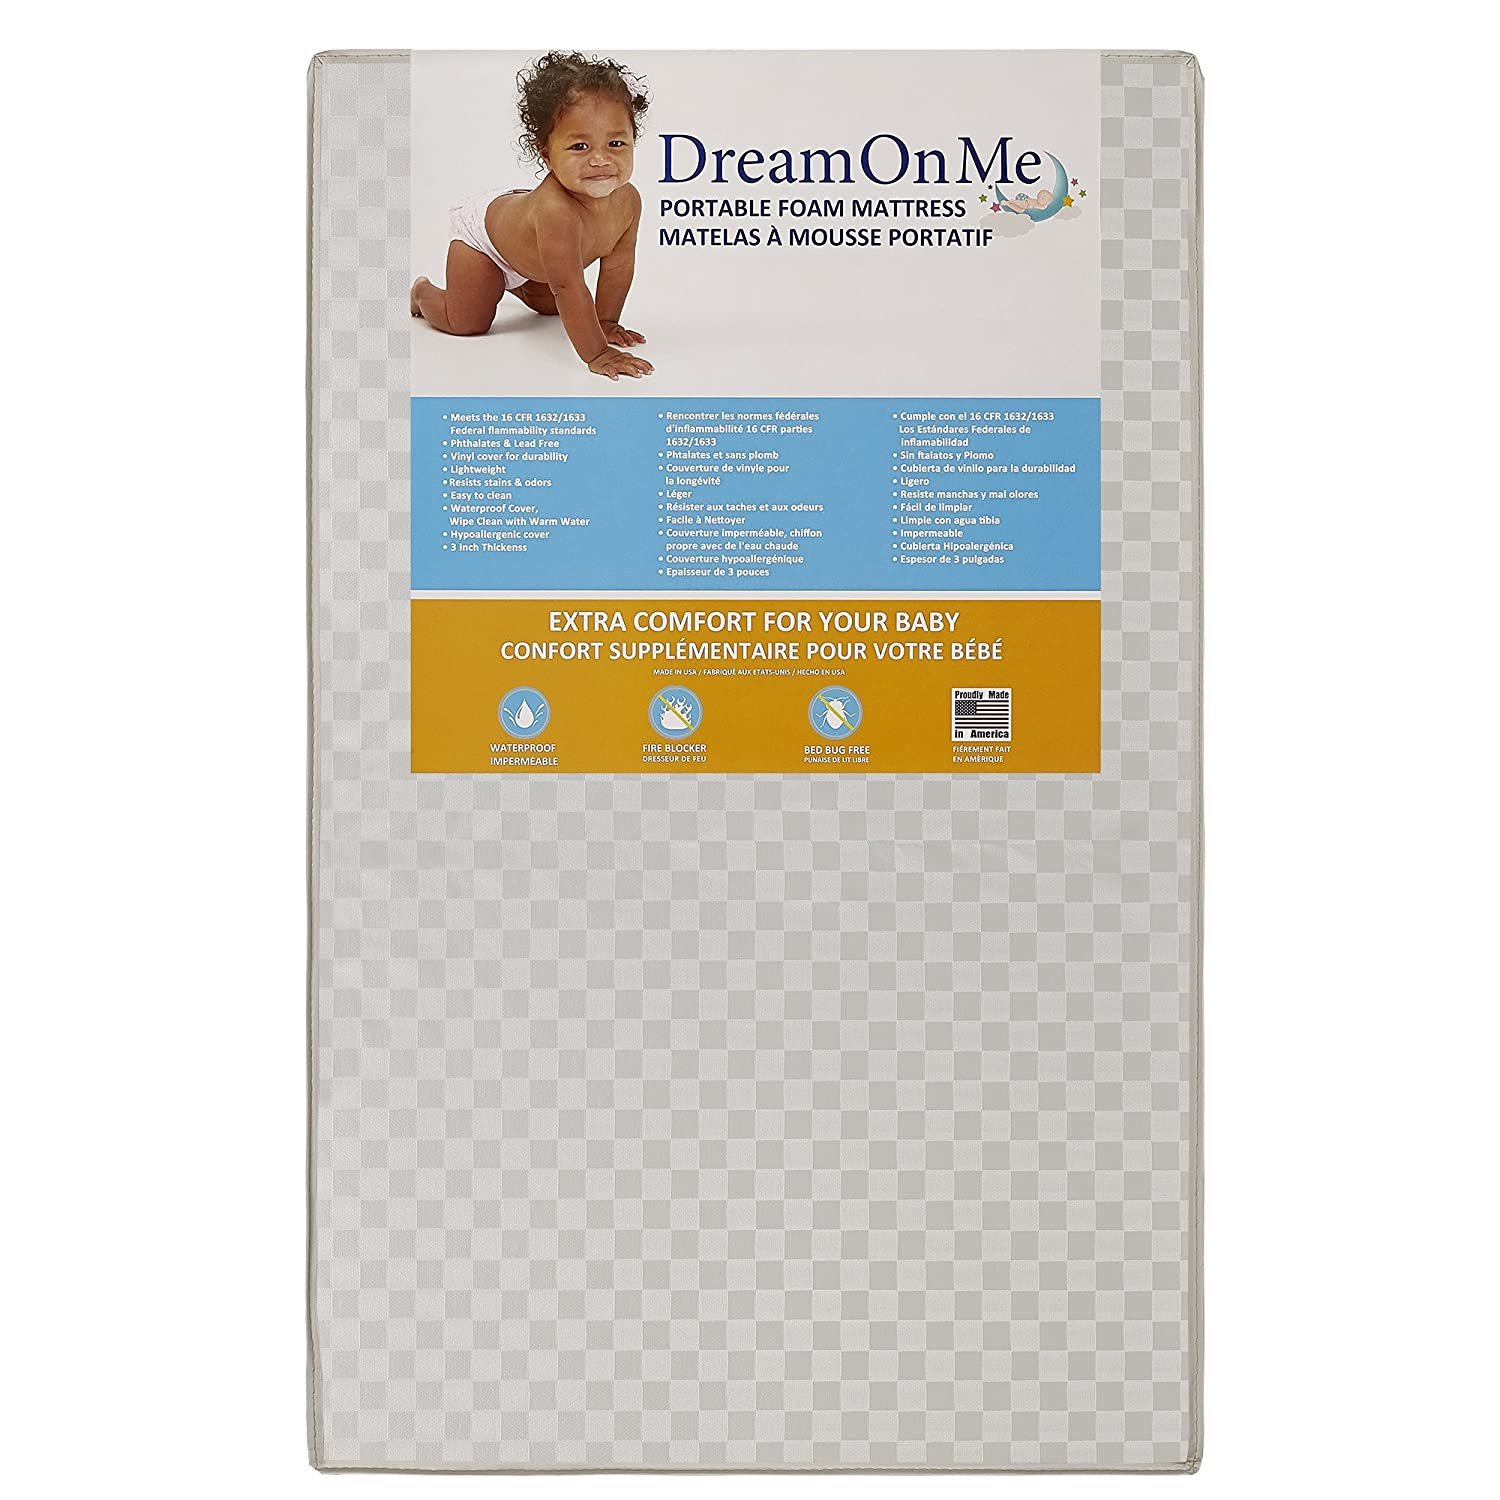 Dream On Me 3 Portable Non Full Size Crib Mattress,.